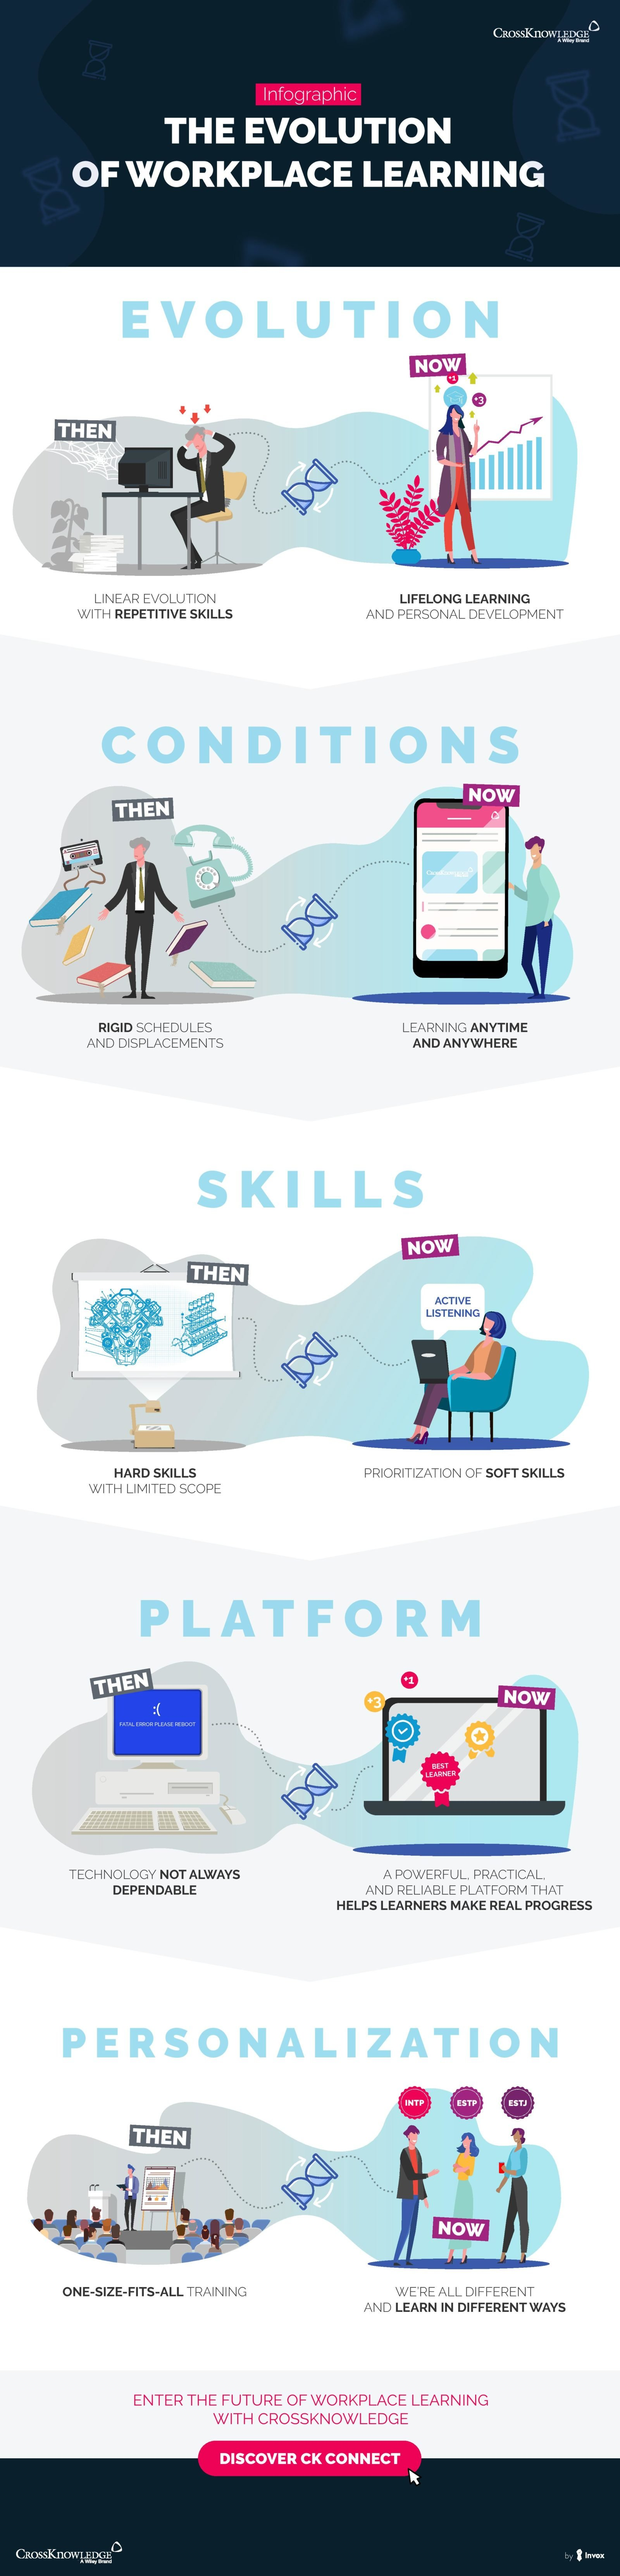 CrossKnowledge – The evolution of workplace learning